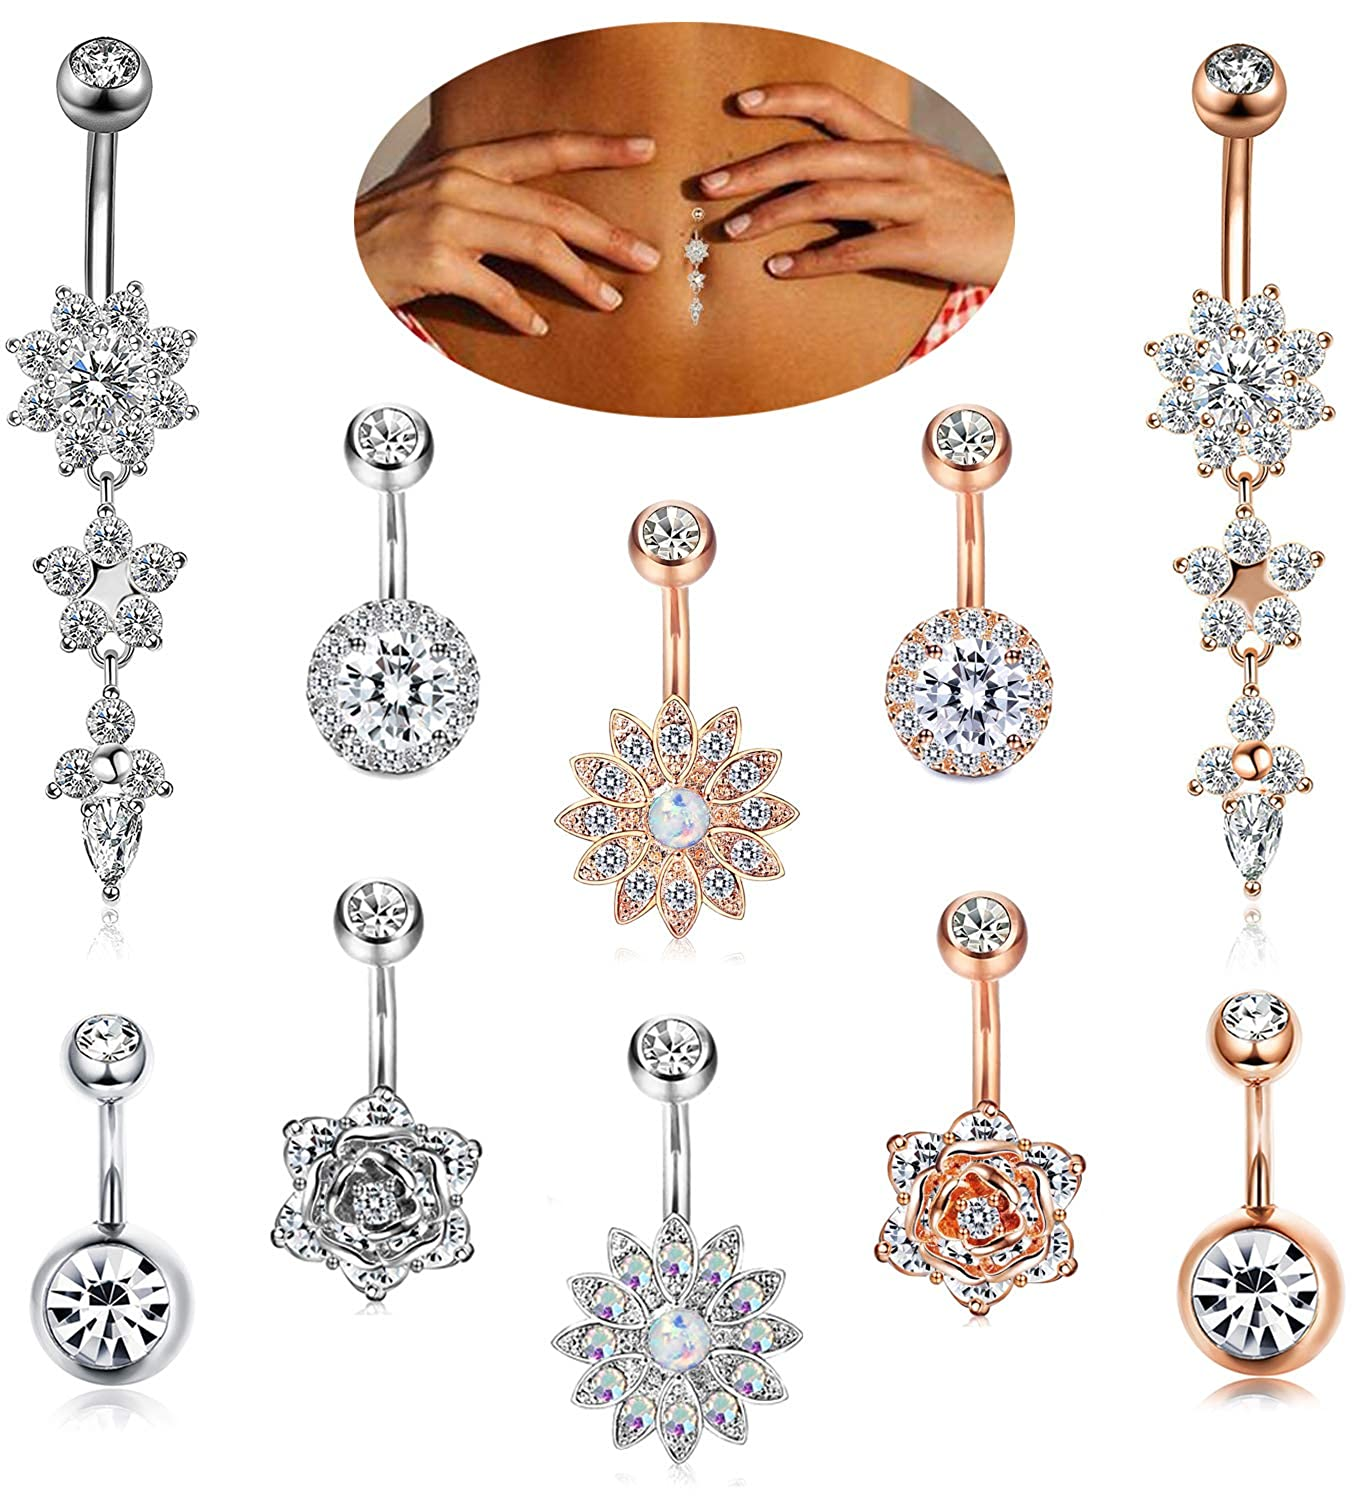 FIBO STEEL 8-10 Pcs 14G Dangle Belly Button Rings for Women Girls Navel Barbell Body Jewelry Piercing 14G P060SET-8